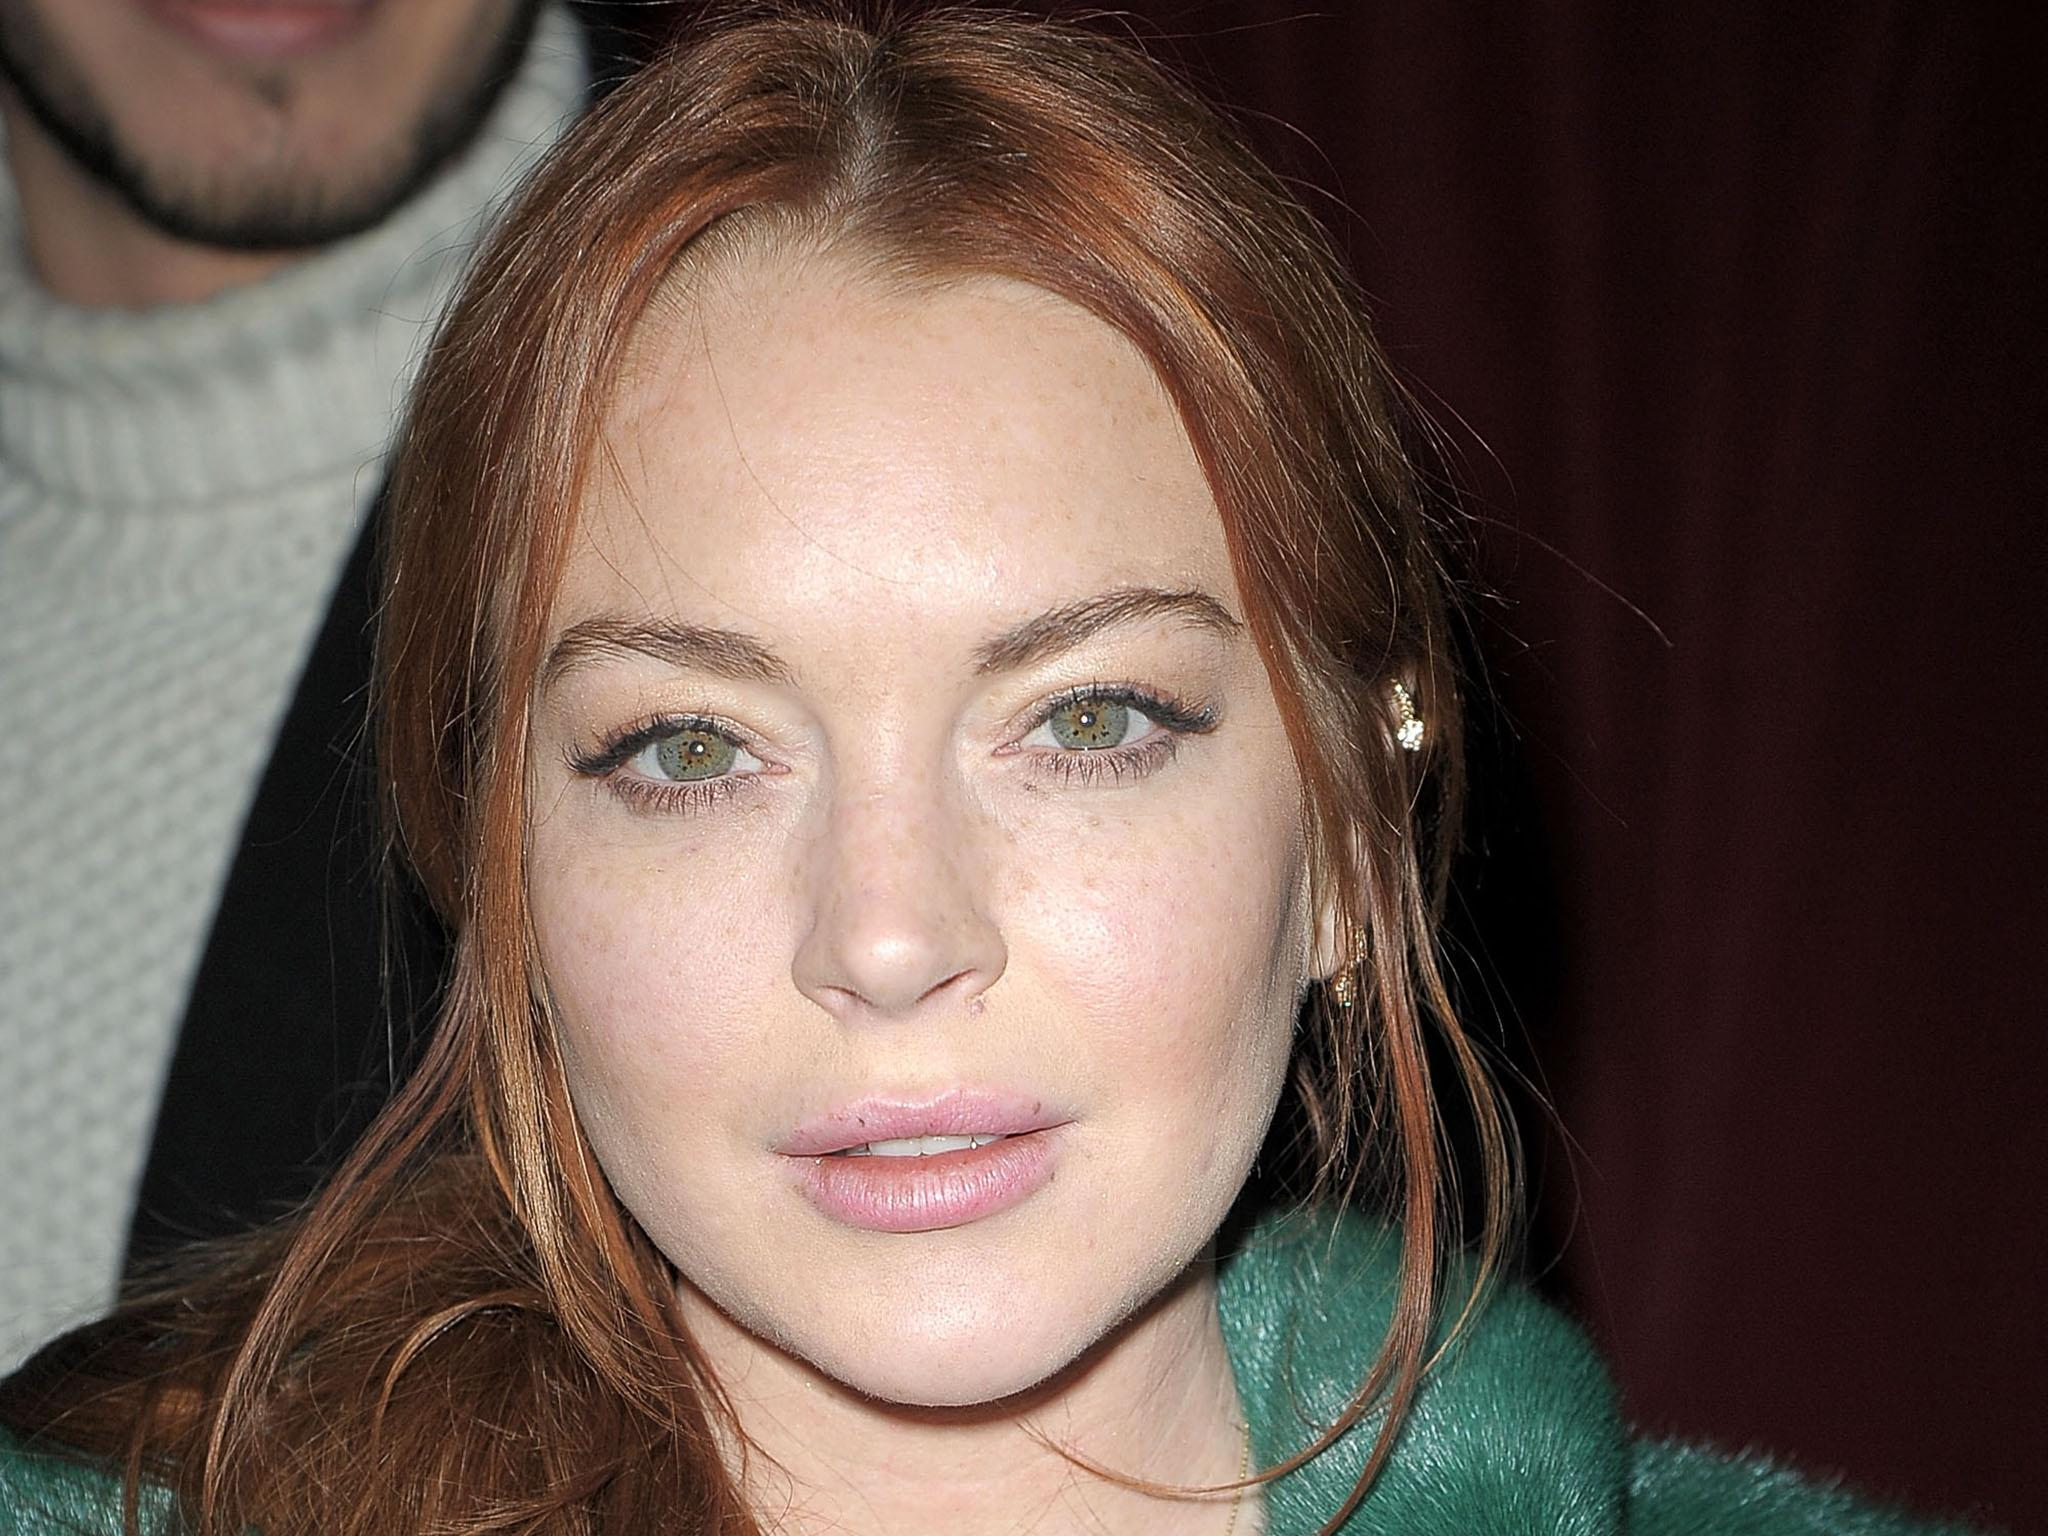 Lindsay Lohan S Instagram Post For International Women S Day Sparks Islam Conversion Rumours